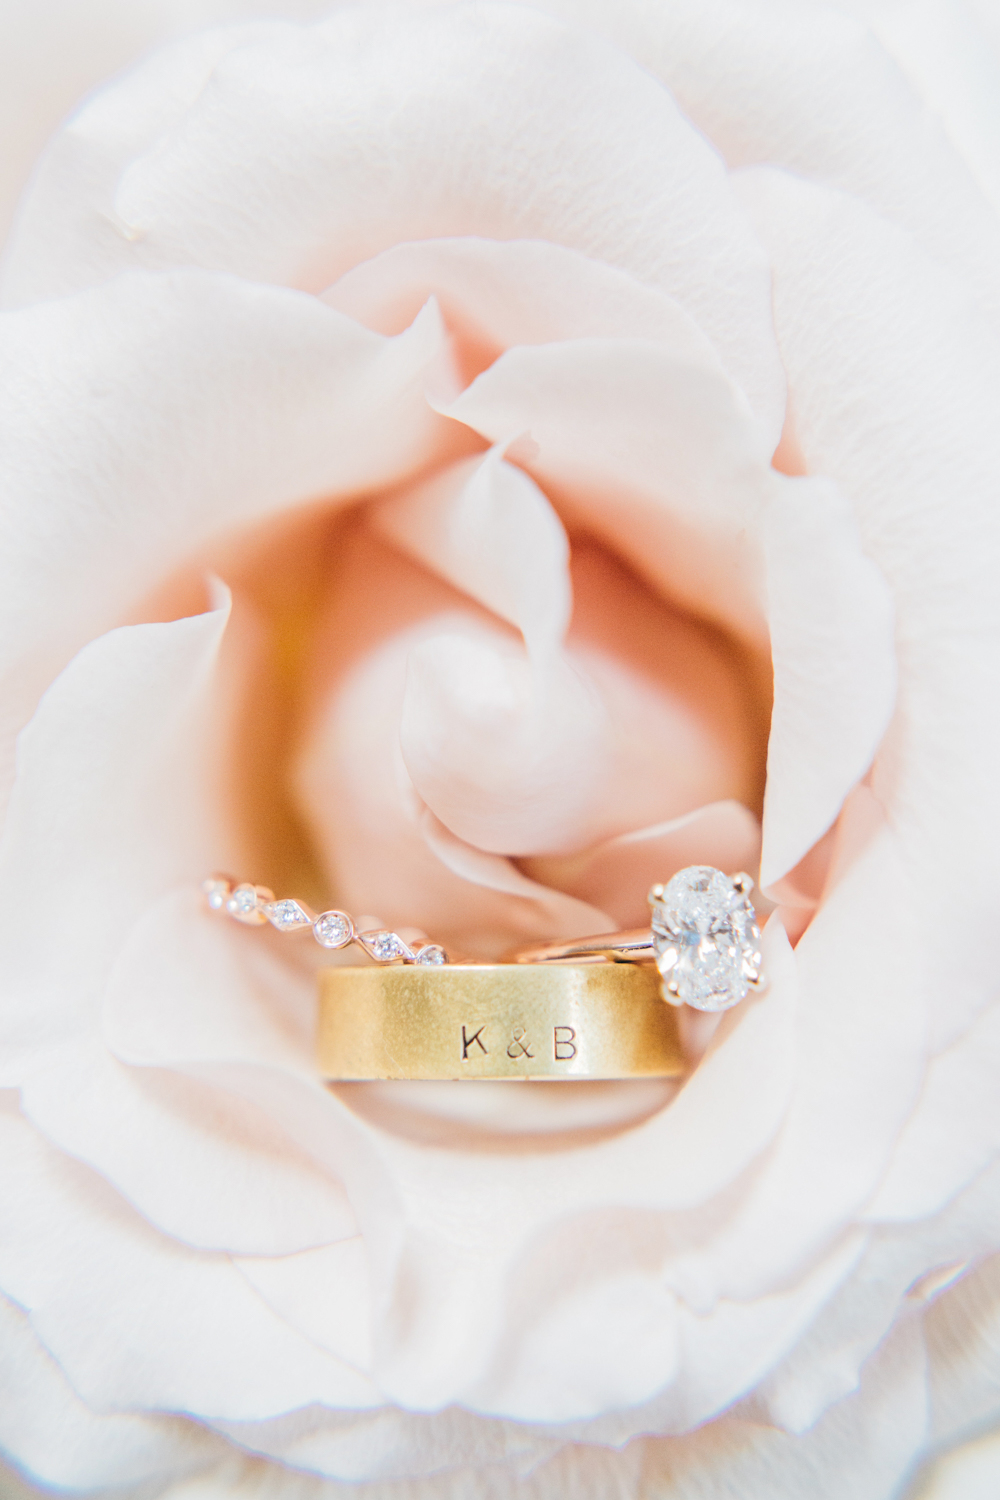 Bride and groom's rings photographed in a flower